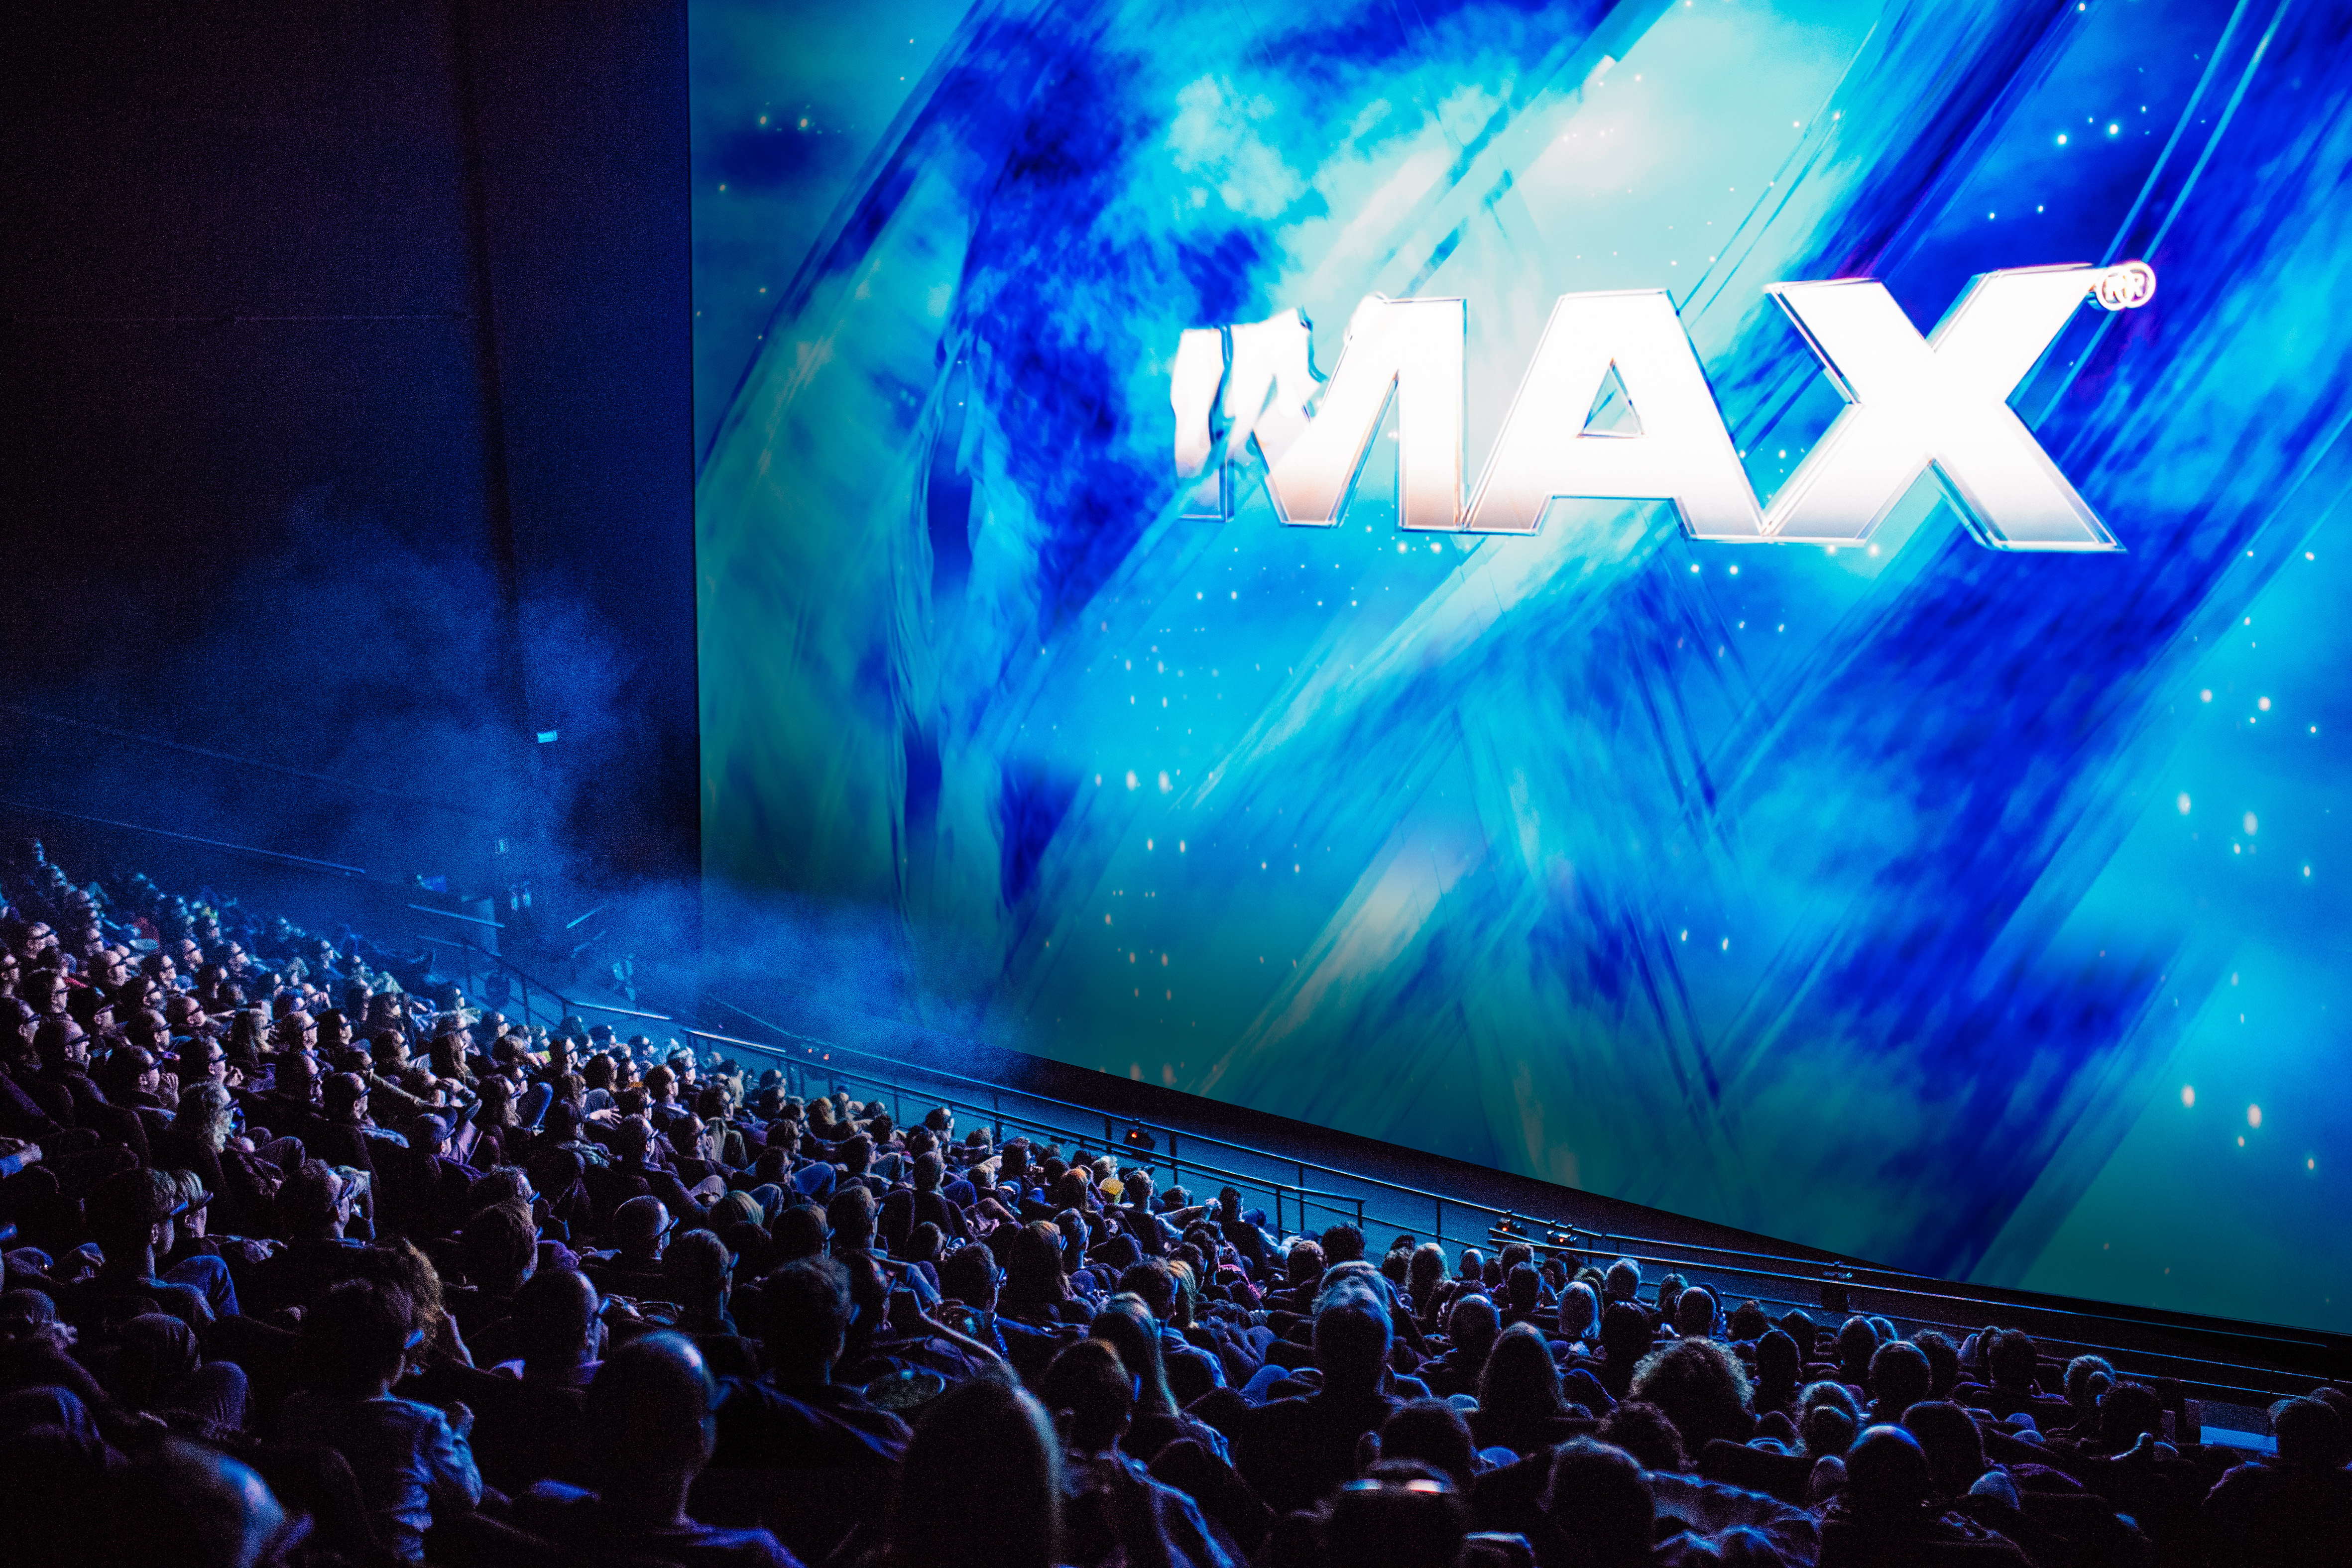 Kinepolis to Open IMAX Theatre in Antwerp in December - Celluloid ...